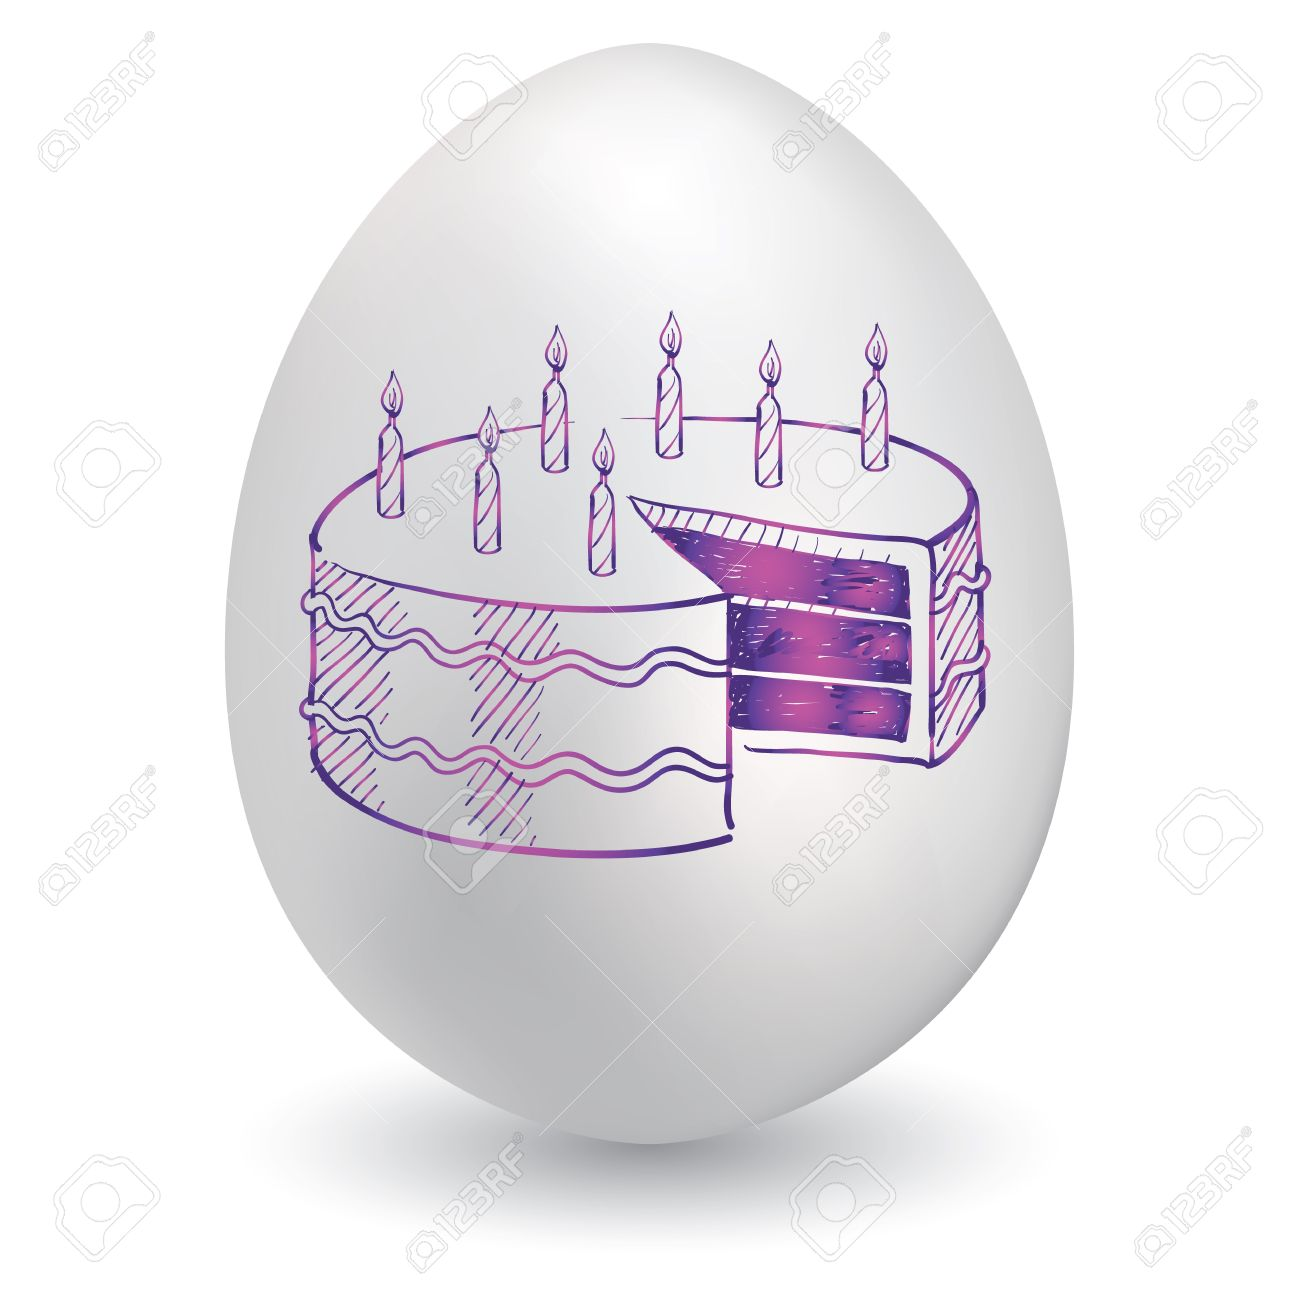 Images of Easter Birthday - Reikian clip art royalty free download